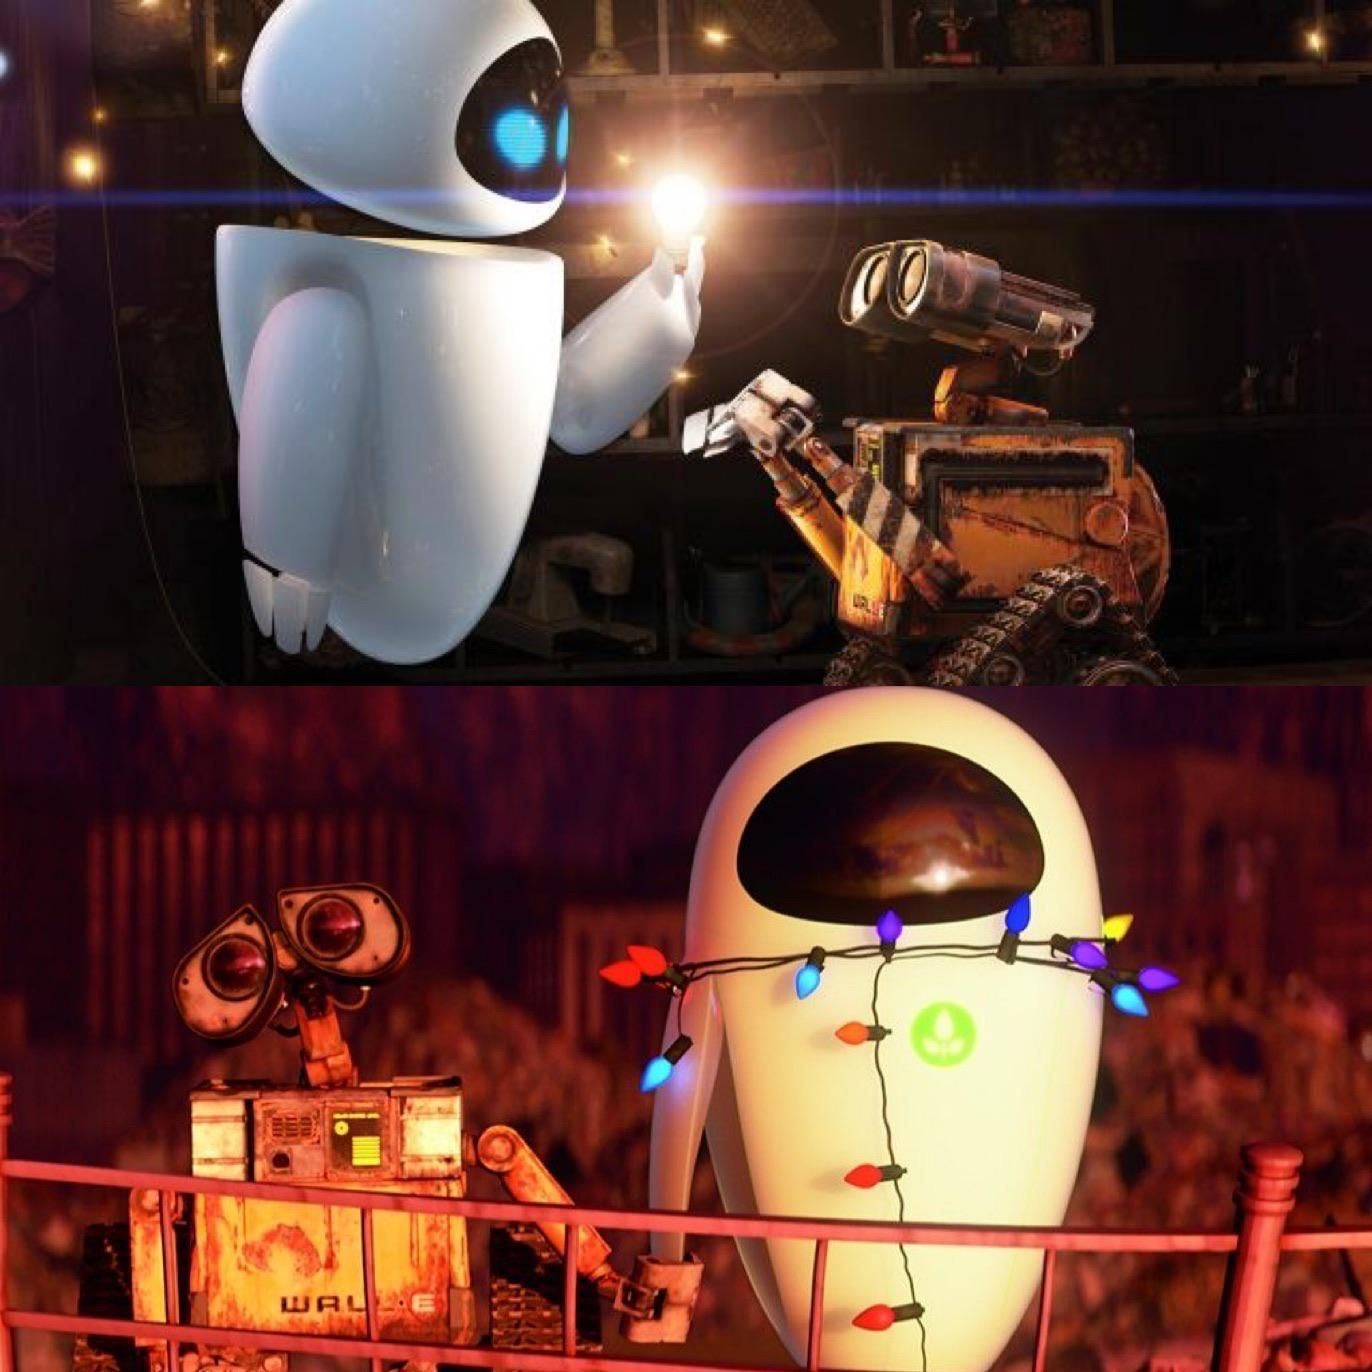 In Wall E 2008 Eve Holds A Light Bulb And It Illuminates By Her Touch When Wall E Moves Her Around With Christmas Lights The Wall E Movie Wall E Wall E